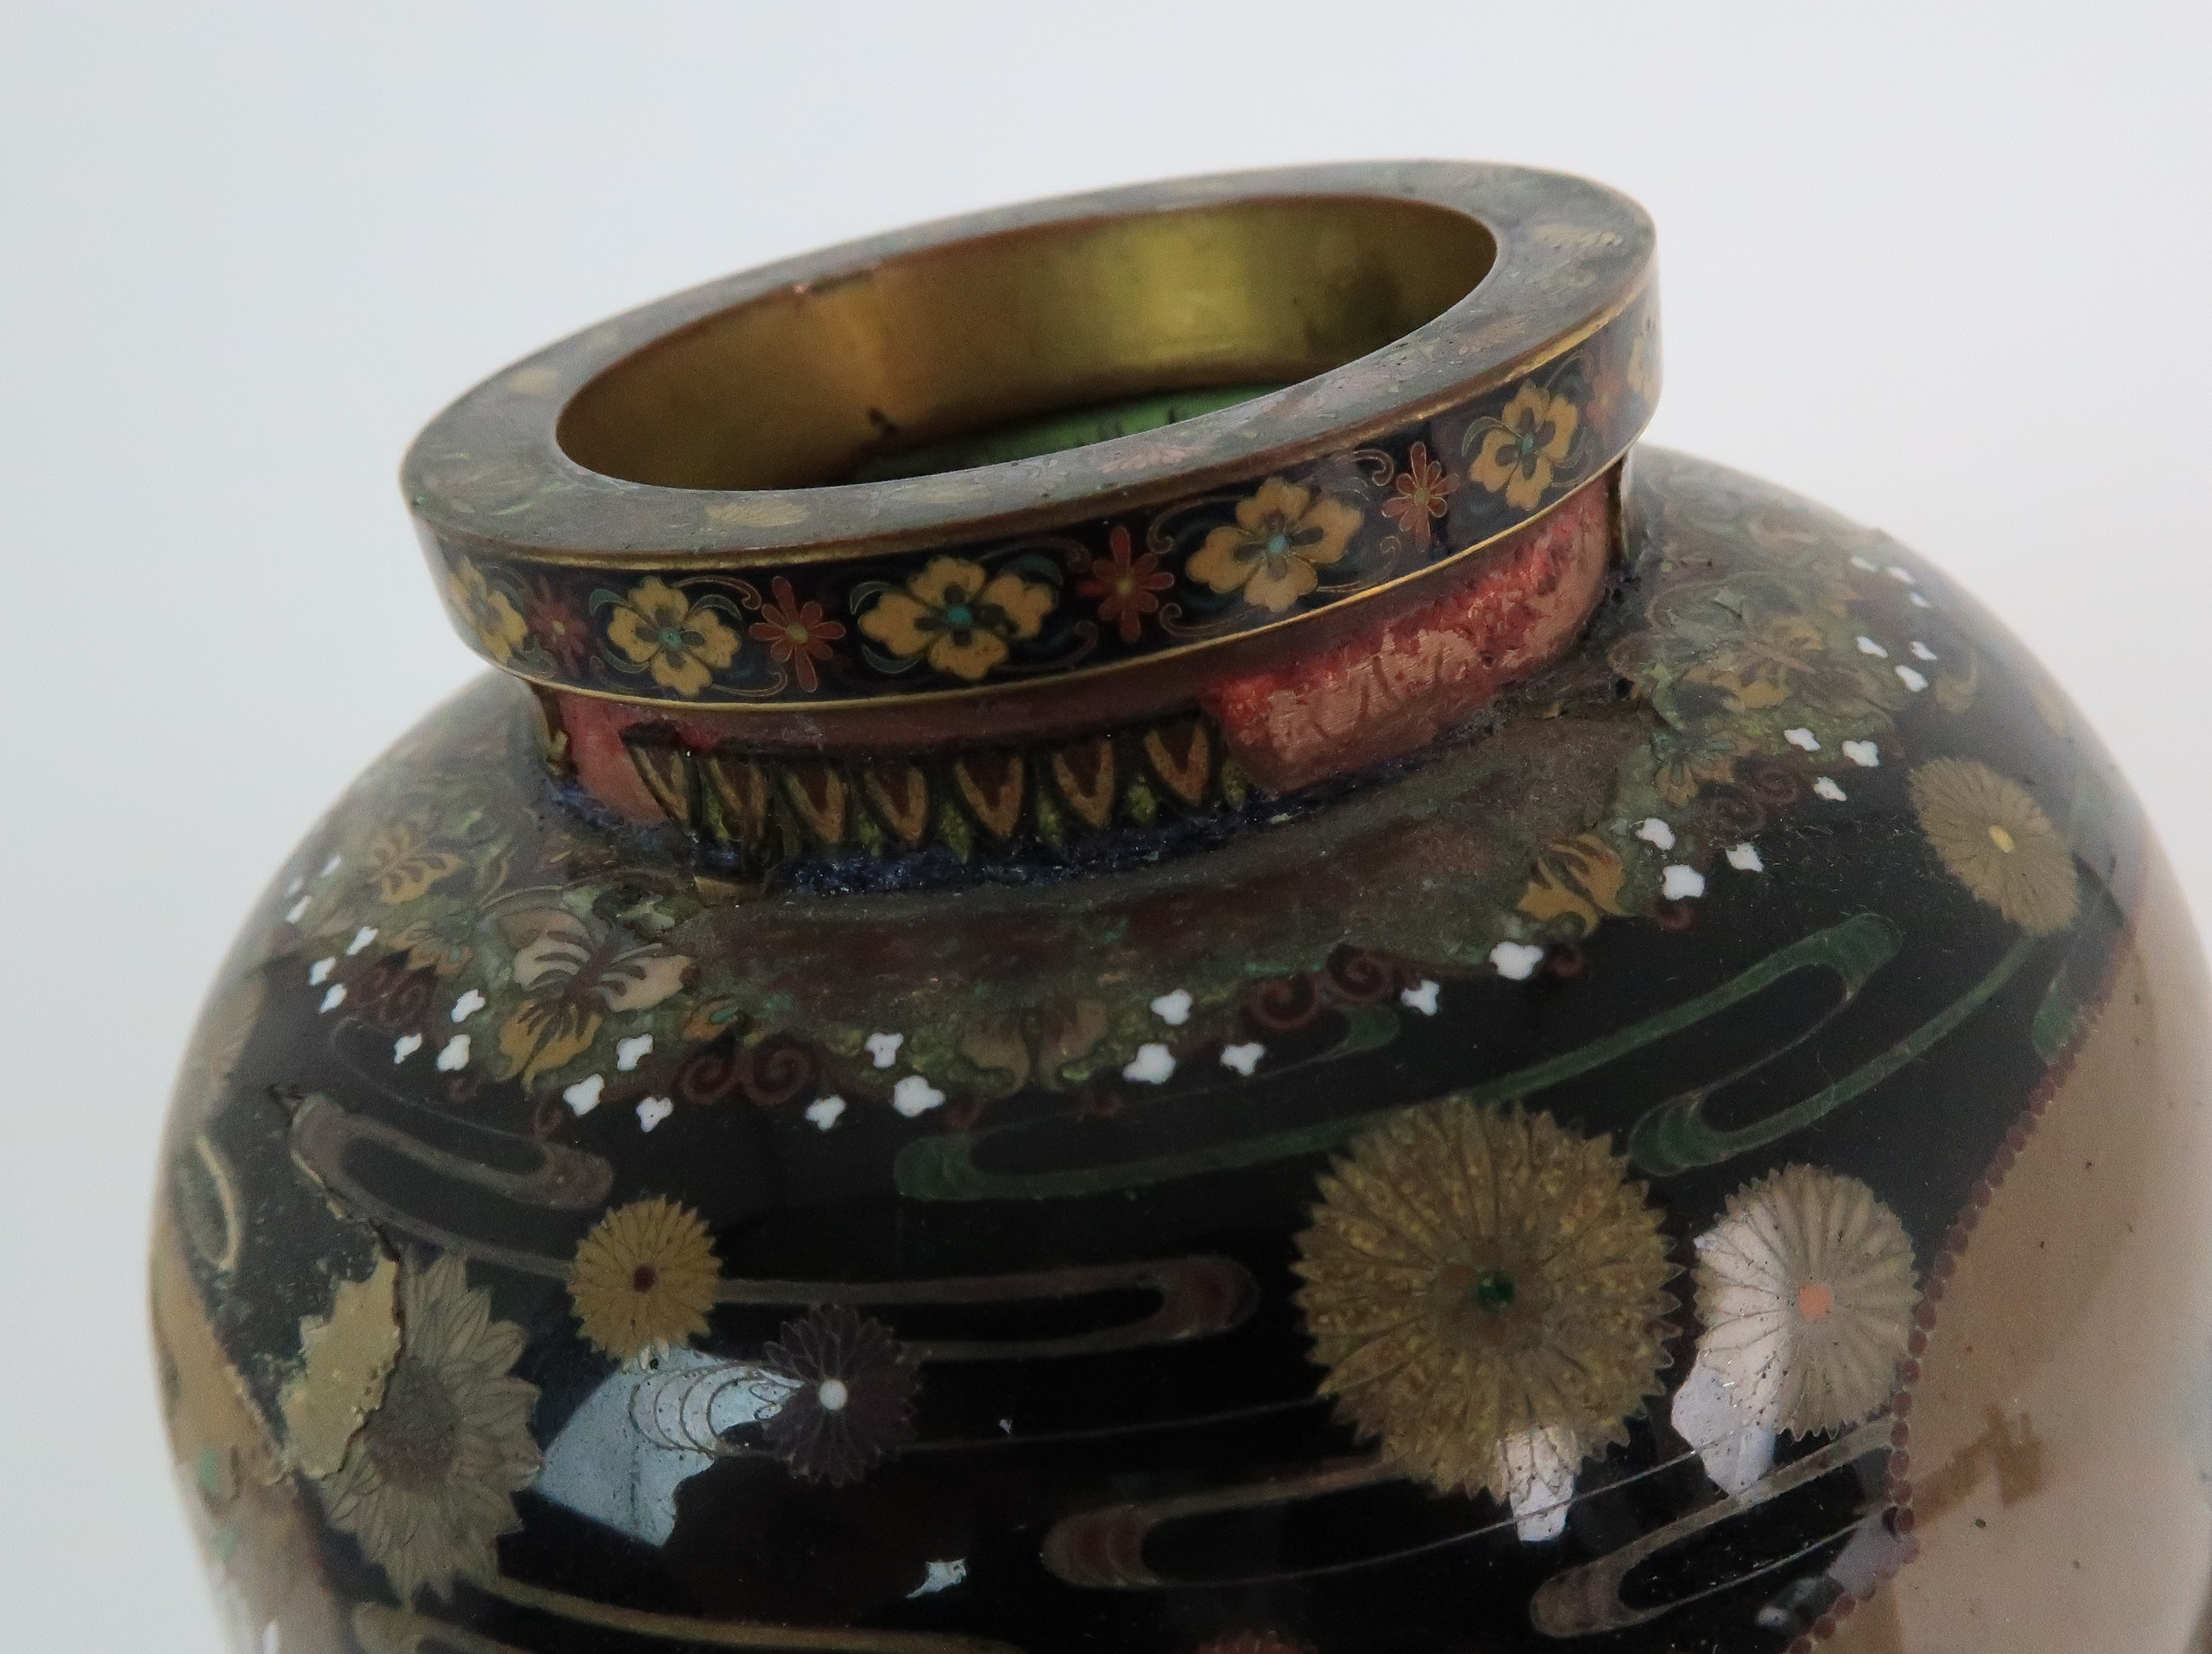 A JAPANESE CLOISONNE BALUSTER VASE finely decorated with panels of birds, butterflies, plants and - Image 4 of 15